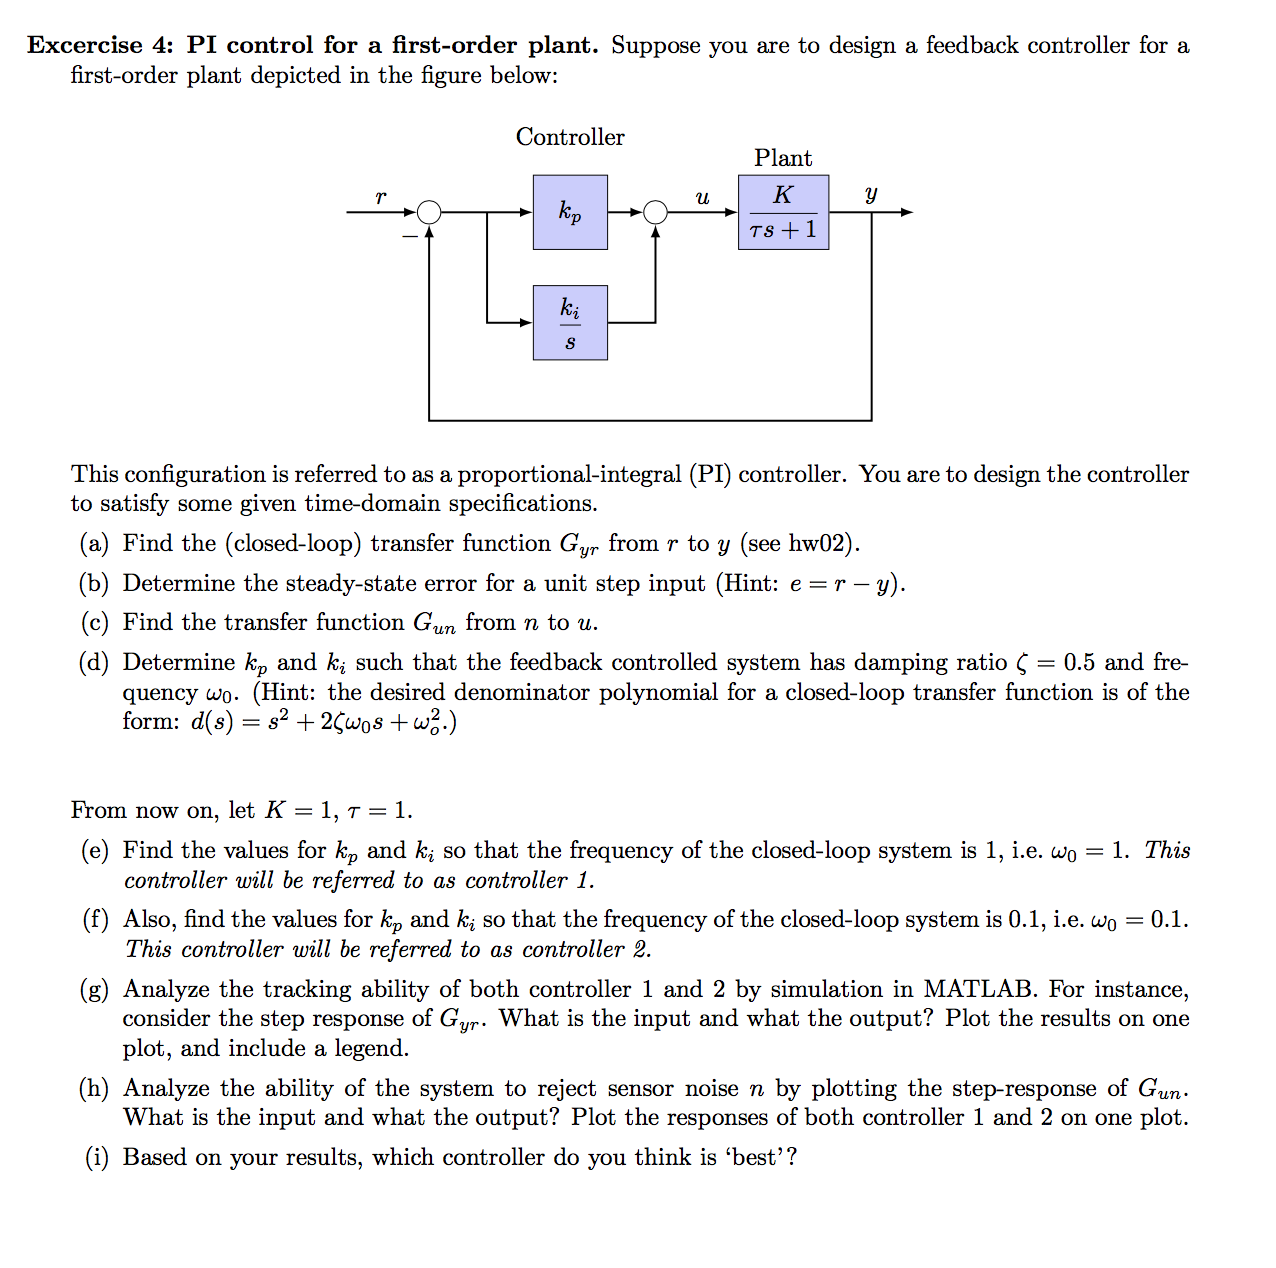 Excercise 4: PI control for a first-order plant. Suppose you are to design a feedback controller for a first-order plant depicted in the figure below: Controller Plant К kp TS 1 S This configuration is referred to as a proportional-integral (PI) controller. You are to design the controller to satisfy some given time-domain specifications. (a) Find the (closed-loop) transfer function Gyr from r to y (see hw02). (b) Determine the steady-state error for a unit step input (Hint: e r - -y) (c) Find the transfer function Gun from n to u. (d) Determine k, and ki such that the feedback controlled system has damping ratio Ç = 0.5 and fre- quency wo. (Hint: the desired denominator polynomial for a closed-loop transfer function is of the form: d(s) s2+ 2Çwos +w2.) From now on, let K = 1, t = 1. (e) Find the values for kp and ki so that the frequency of the closed-loop system is 1, i.e. wo = 1. This controller will be referred to as controller 1. (f) Also, find the values for k, and k so that the frequency of the closed-loop system is 0.1, i.e. wo This controller will be referred to as controller 2. = 0.1 (g) Analyze the tracking ability of both controller 1 and 2 by simulation in MATLAB. For instance, consider the step response of Gur. What is the input and what the output? Plot the results on one plot, and include a legend (h) Analyze the ability of the system to reject sensor noise n by plotting the step-response of Gun What is the input and what the output? Plot the responses of both controller 1 and 2 on one plot. (i) Based on your results, which controller do you think is 'best'?